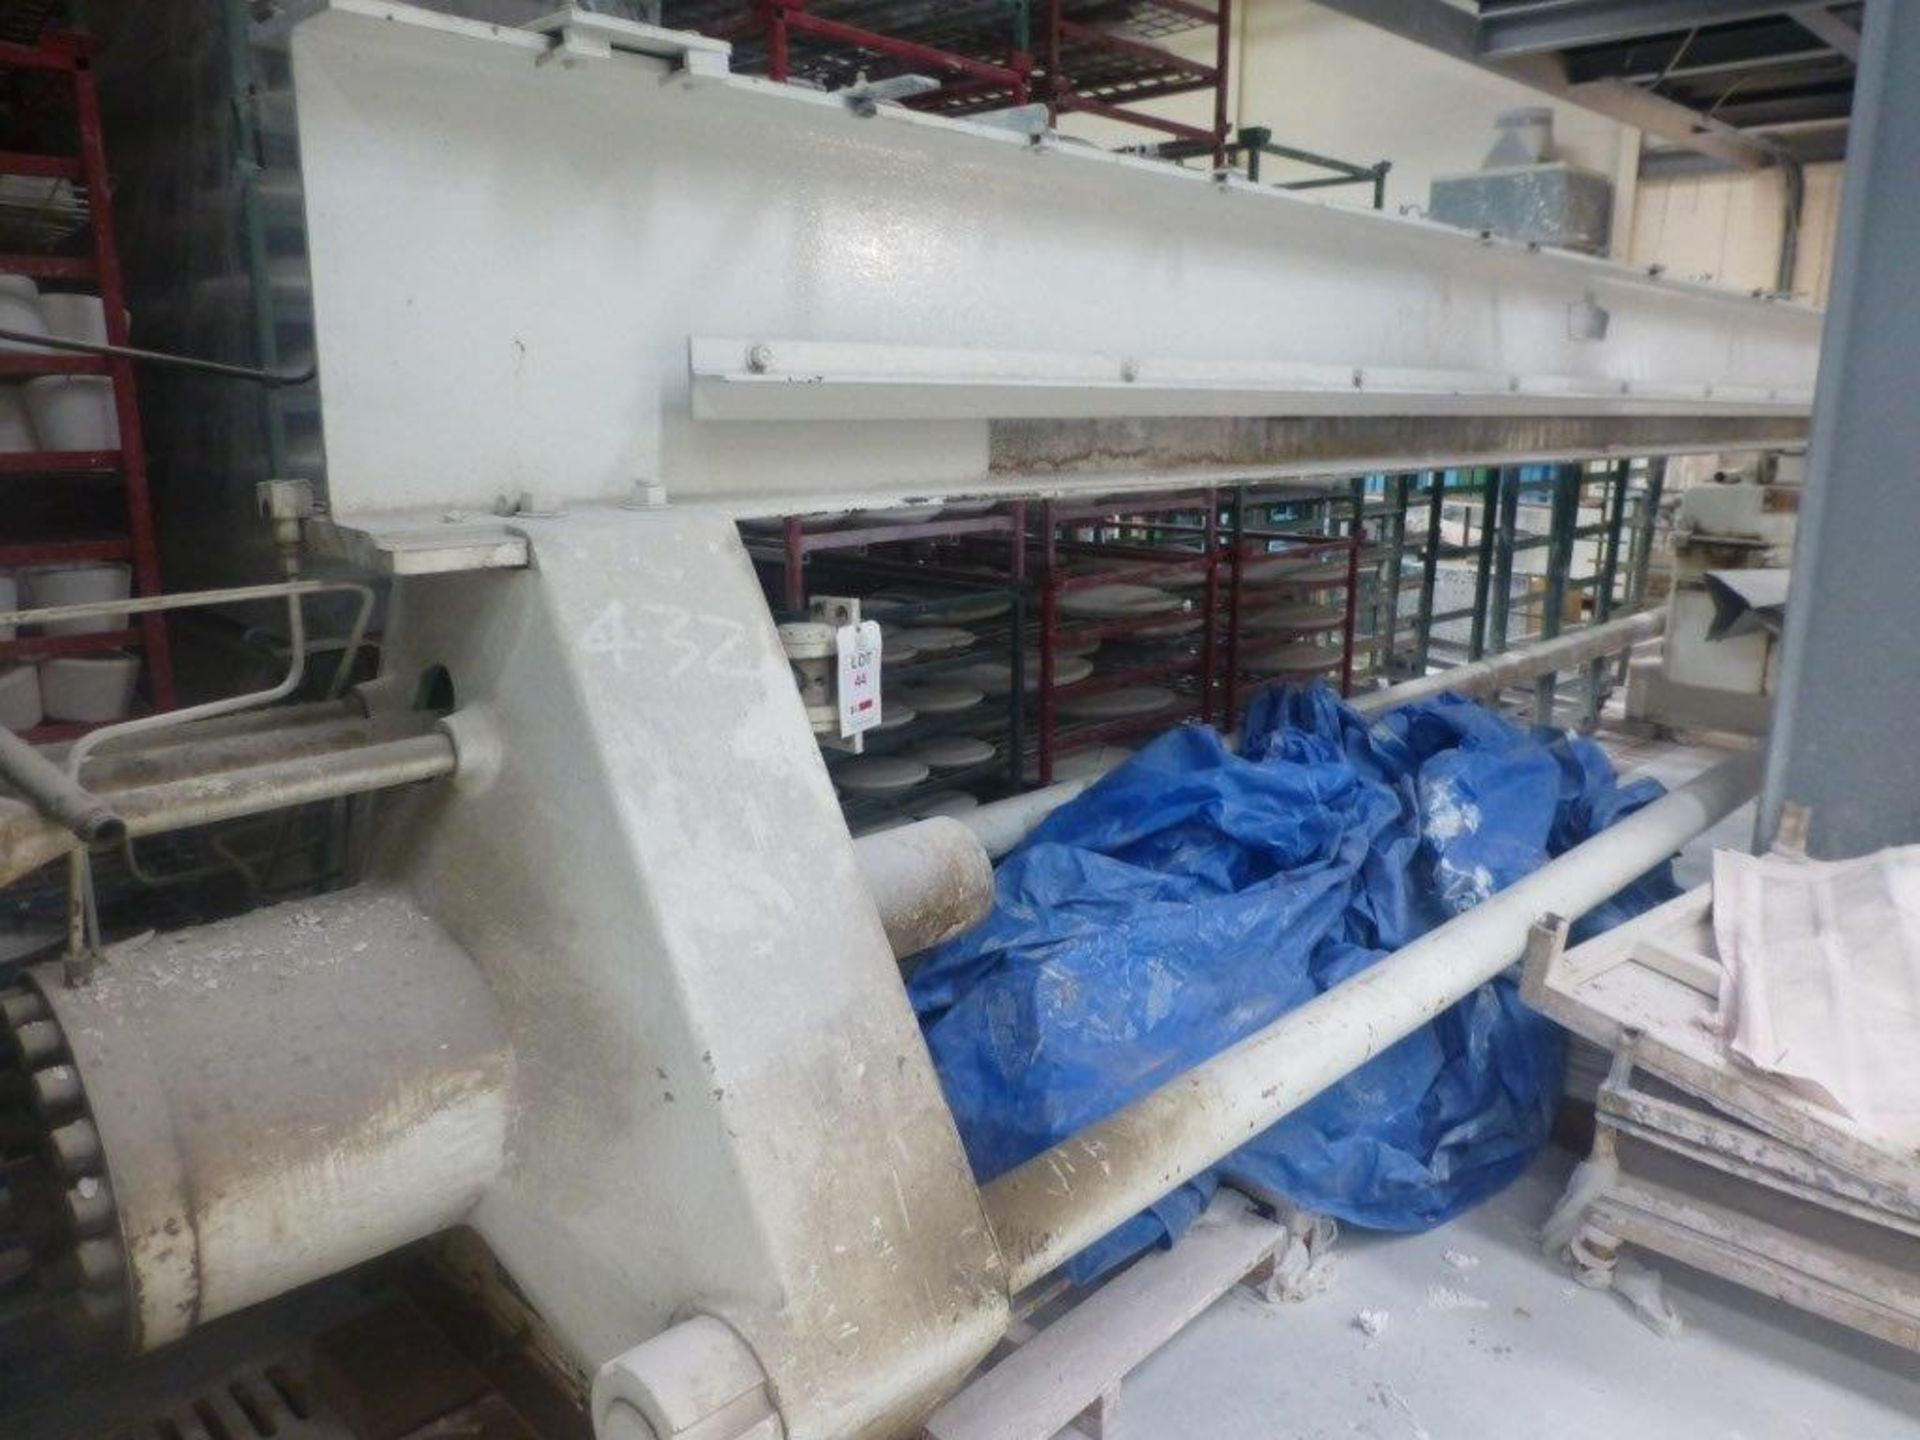 Lot 44 - William Boulton 2231 partially dismantled filter press, overall length 7.4m with a quantity of